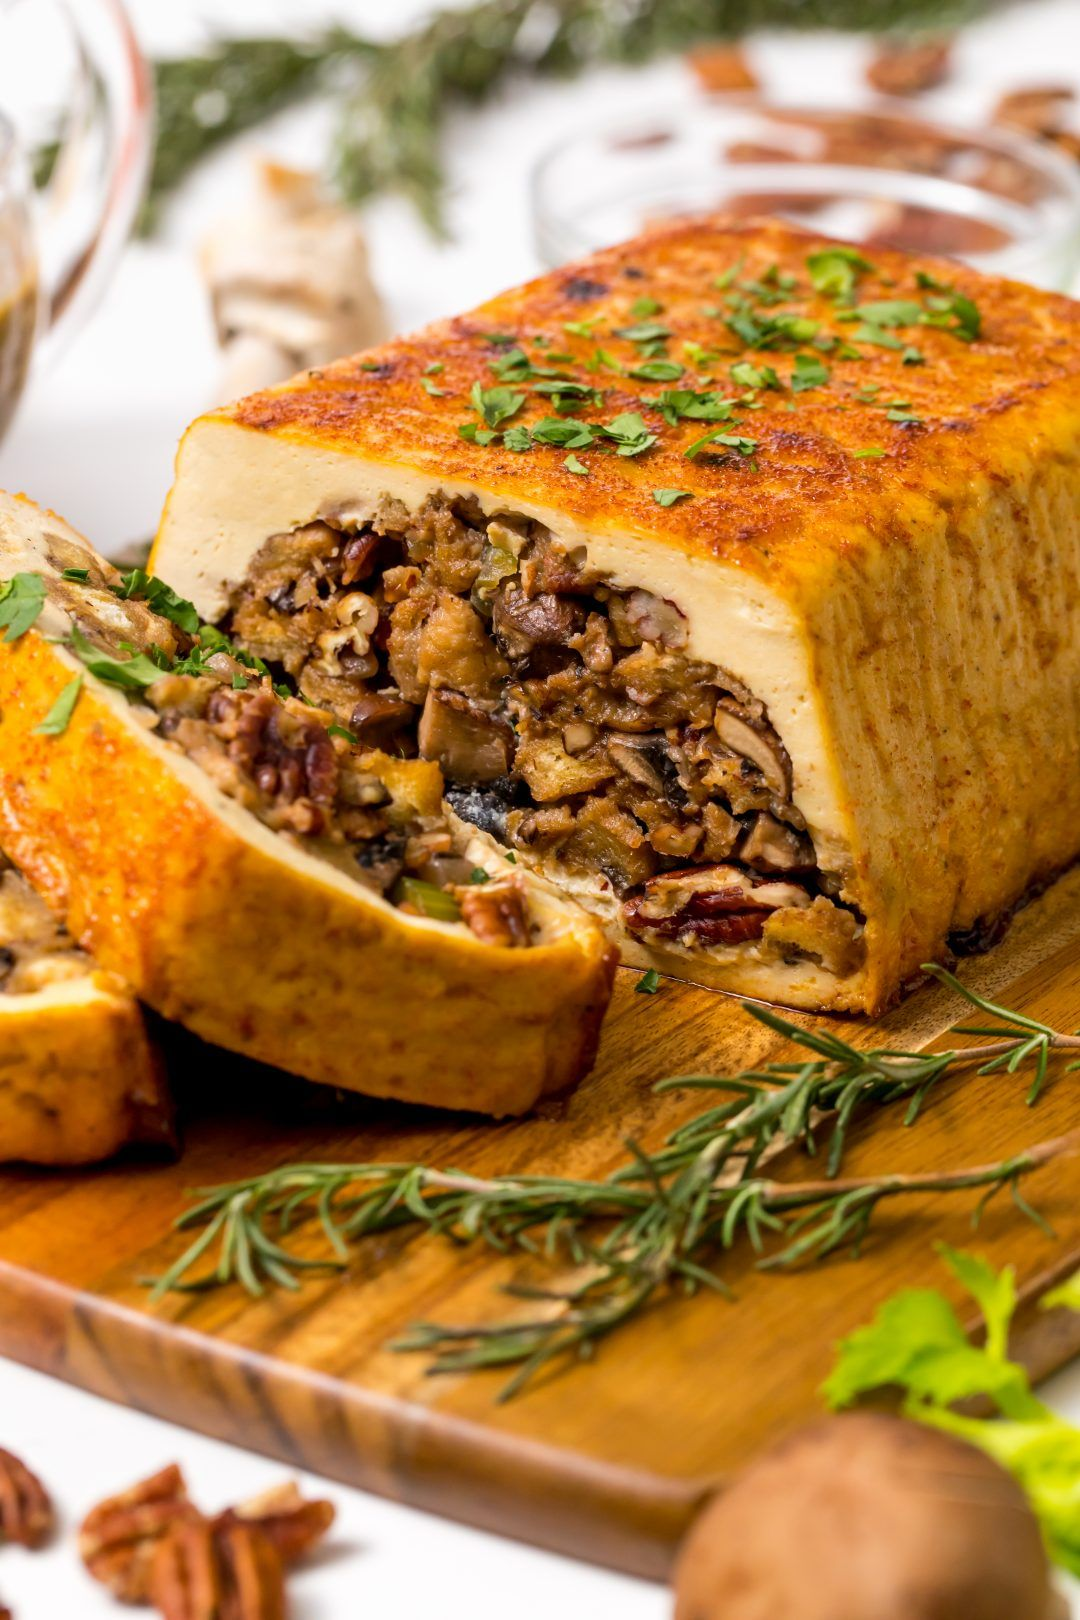 Vegans Rejoice A Tofurky With Mushroom Stuffing And Gravy Is All You Need For A Perfect Thanksgiving Dinner Recipe Tofurky Stuffed Mushrooms Main Dish Recipes